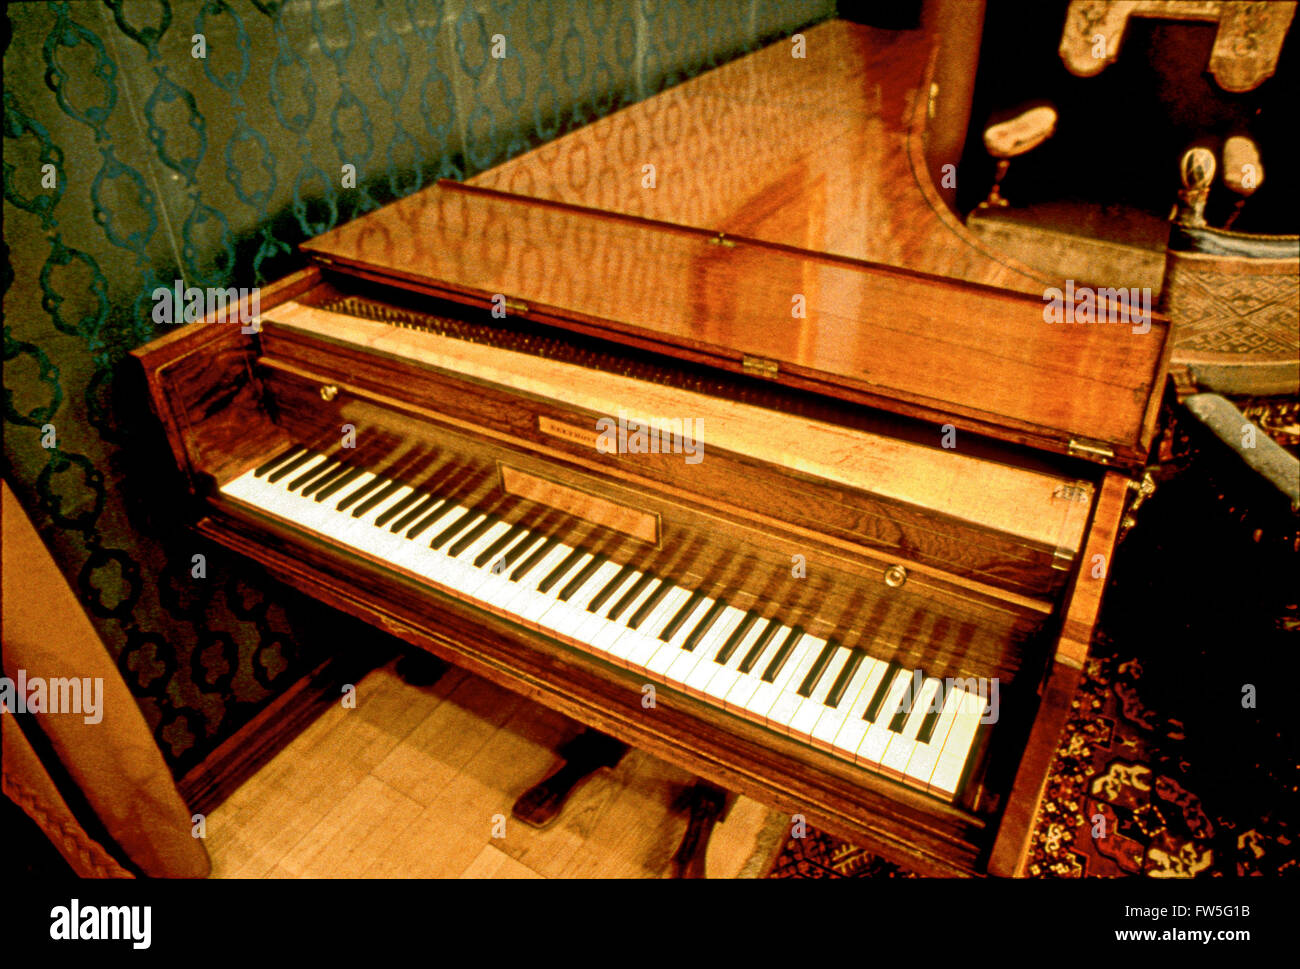 Ludwig Van Beethoven - the German composer's Broadwood piano at the Liszt museum in Budapest, Hungary (Old Academy). - Stock Image